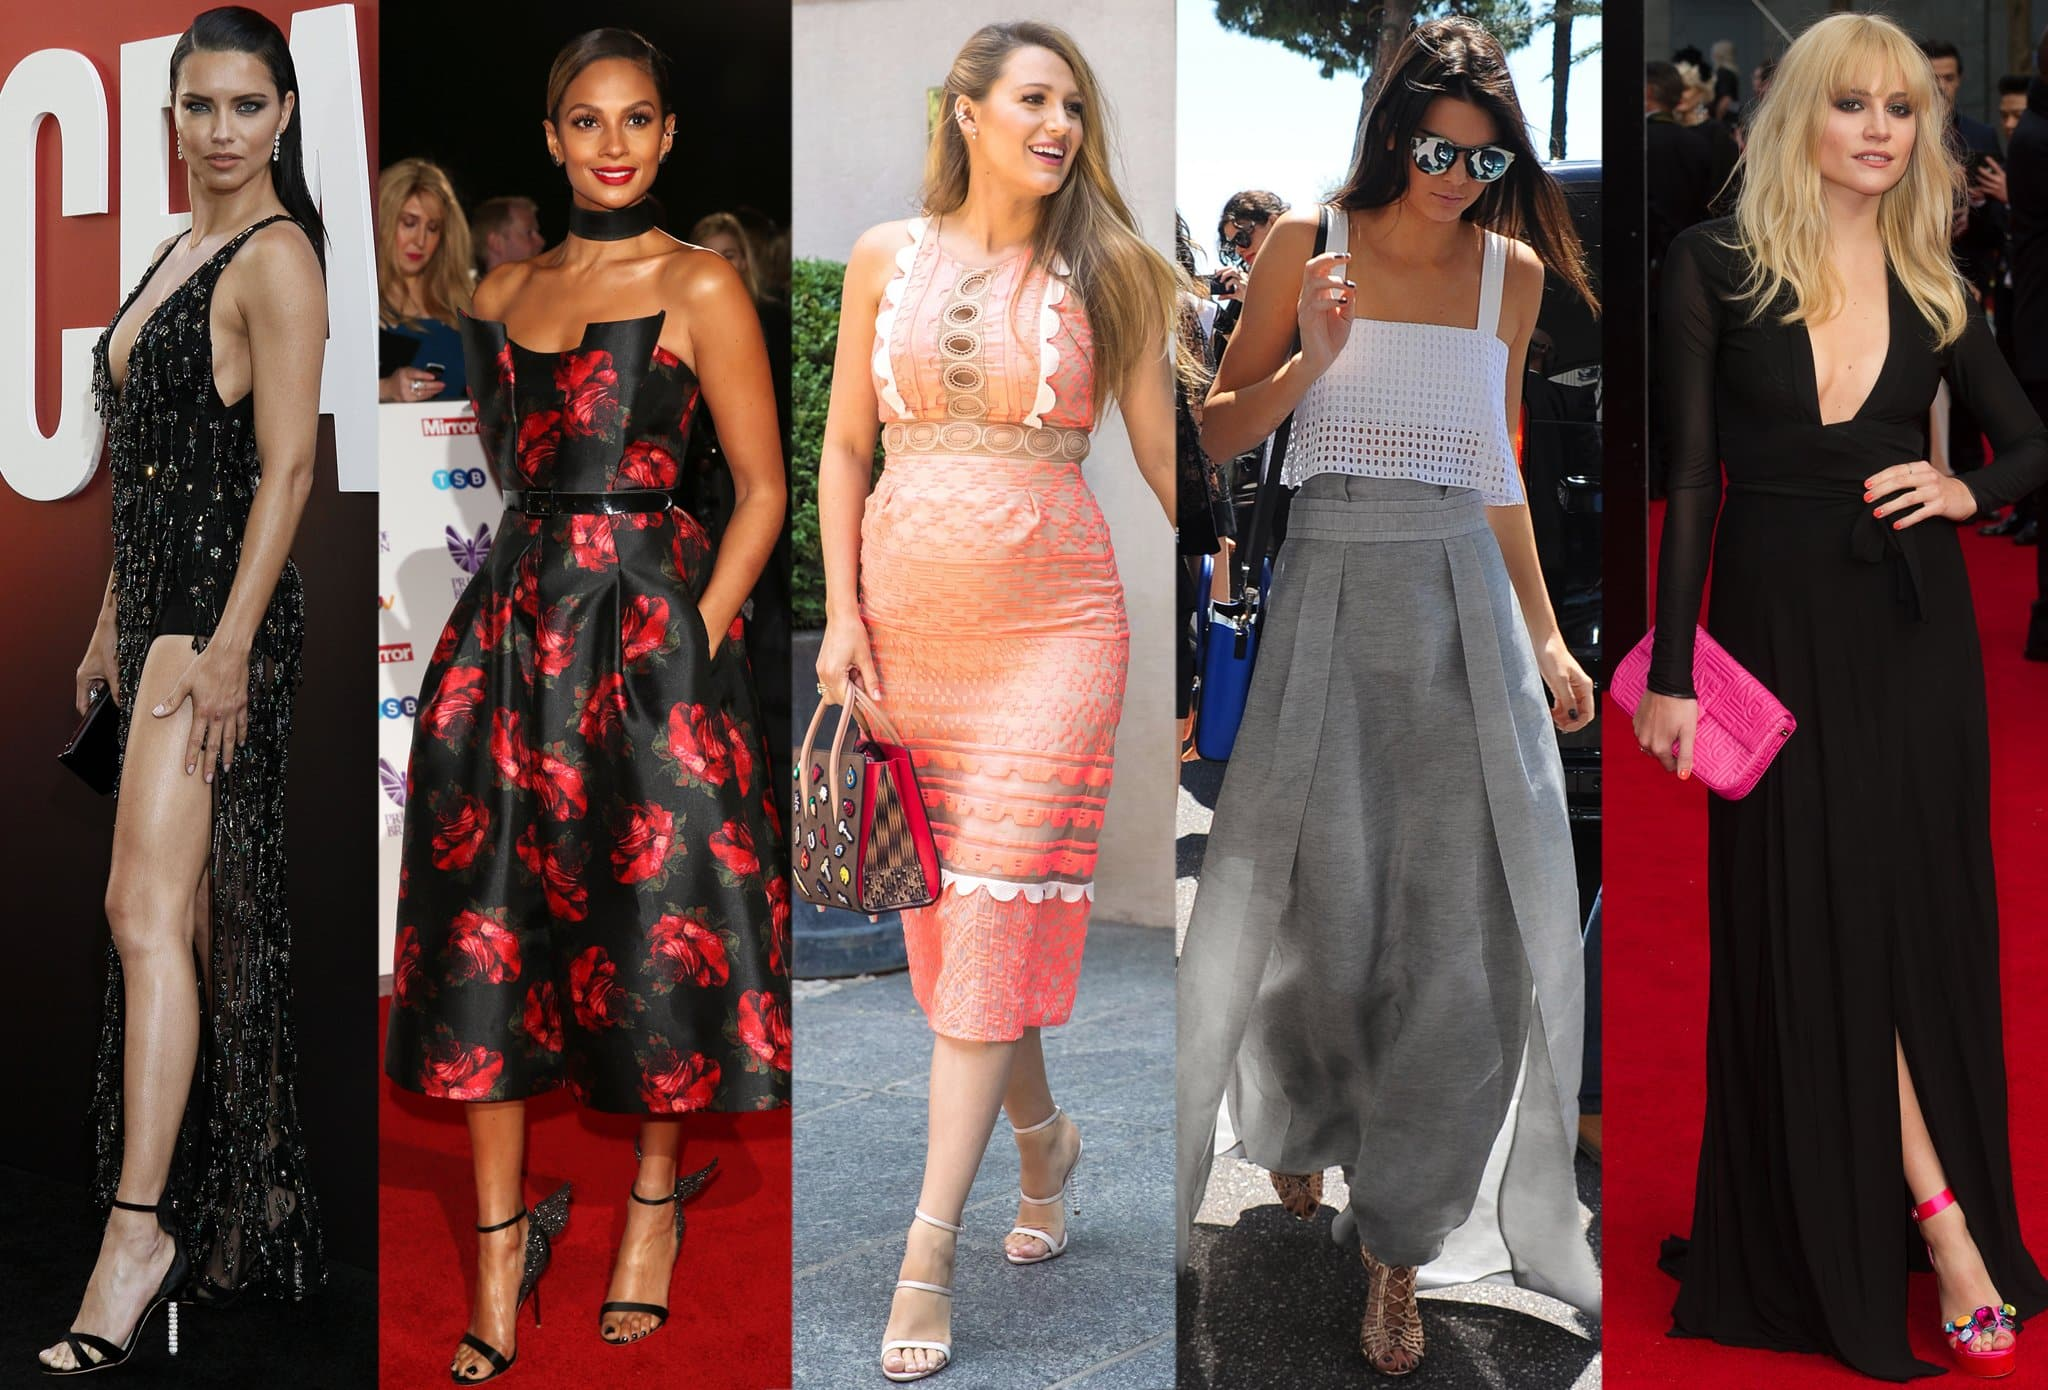 Adriana Lima, Alesha Dixon, Blake Lively, Kendall Jenner, and Pixie Lott are among the many celebrity fans of Sophia Webster